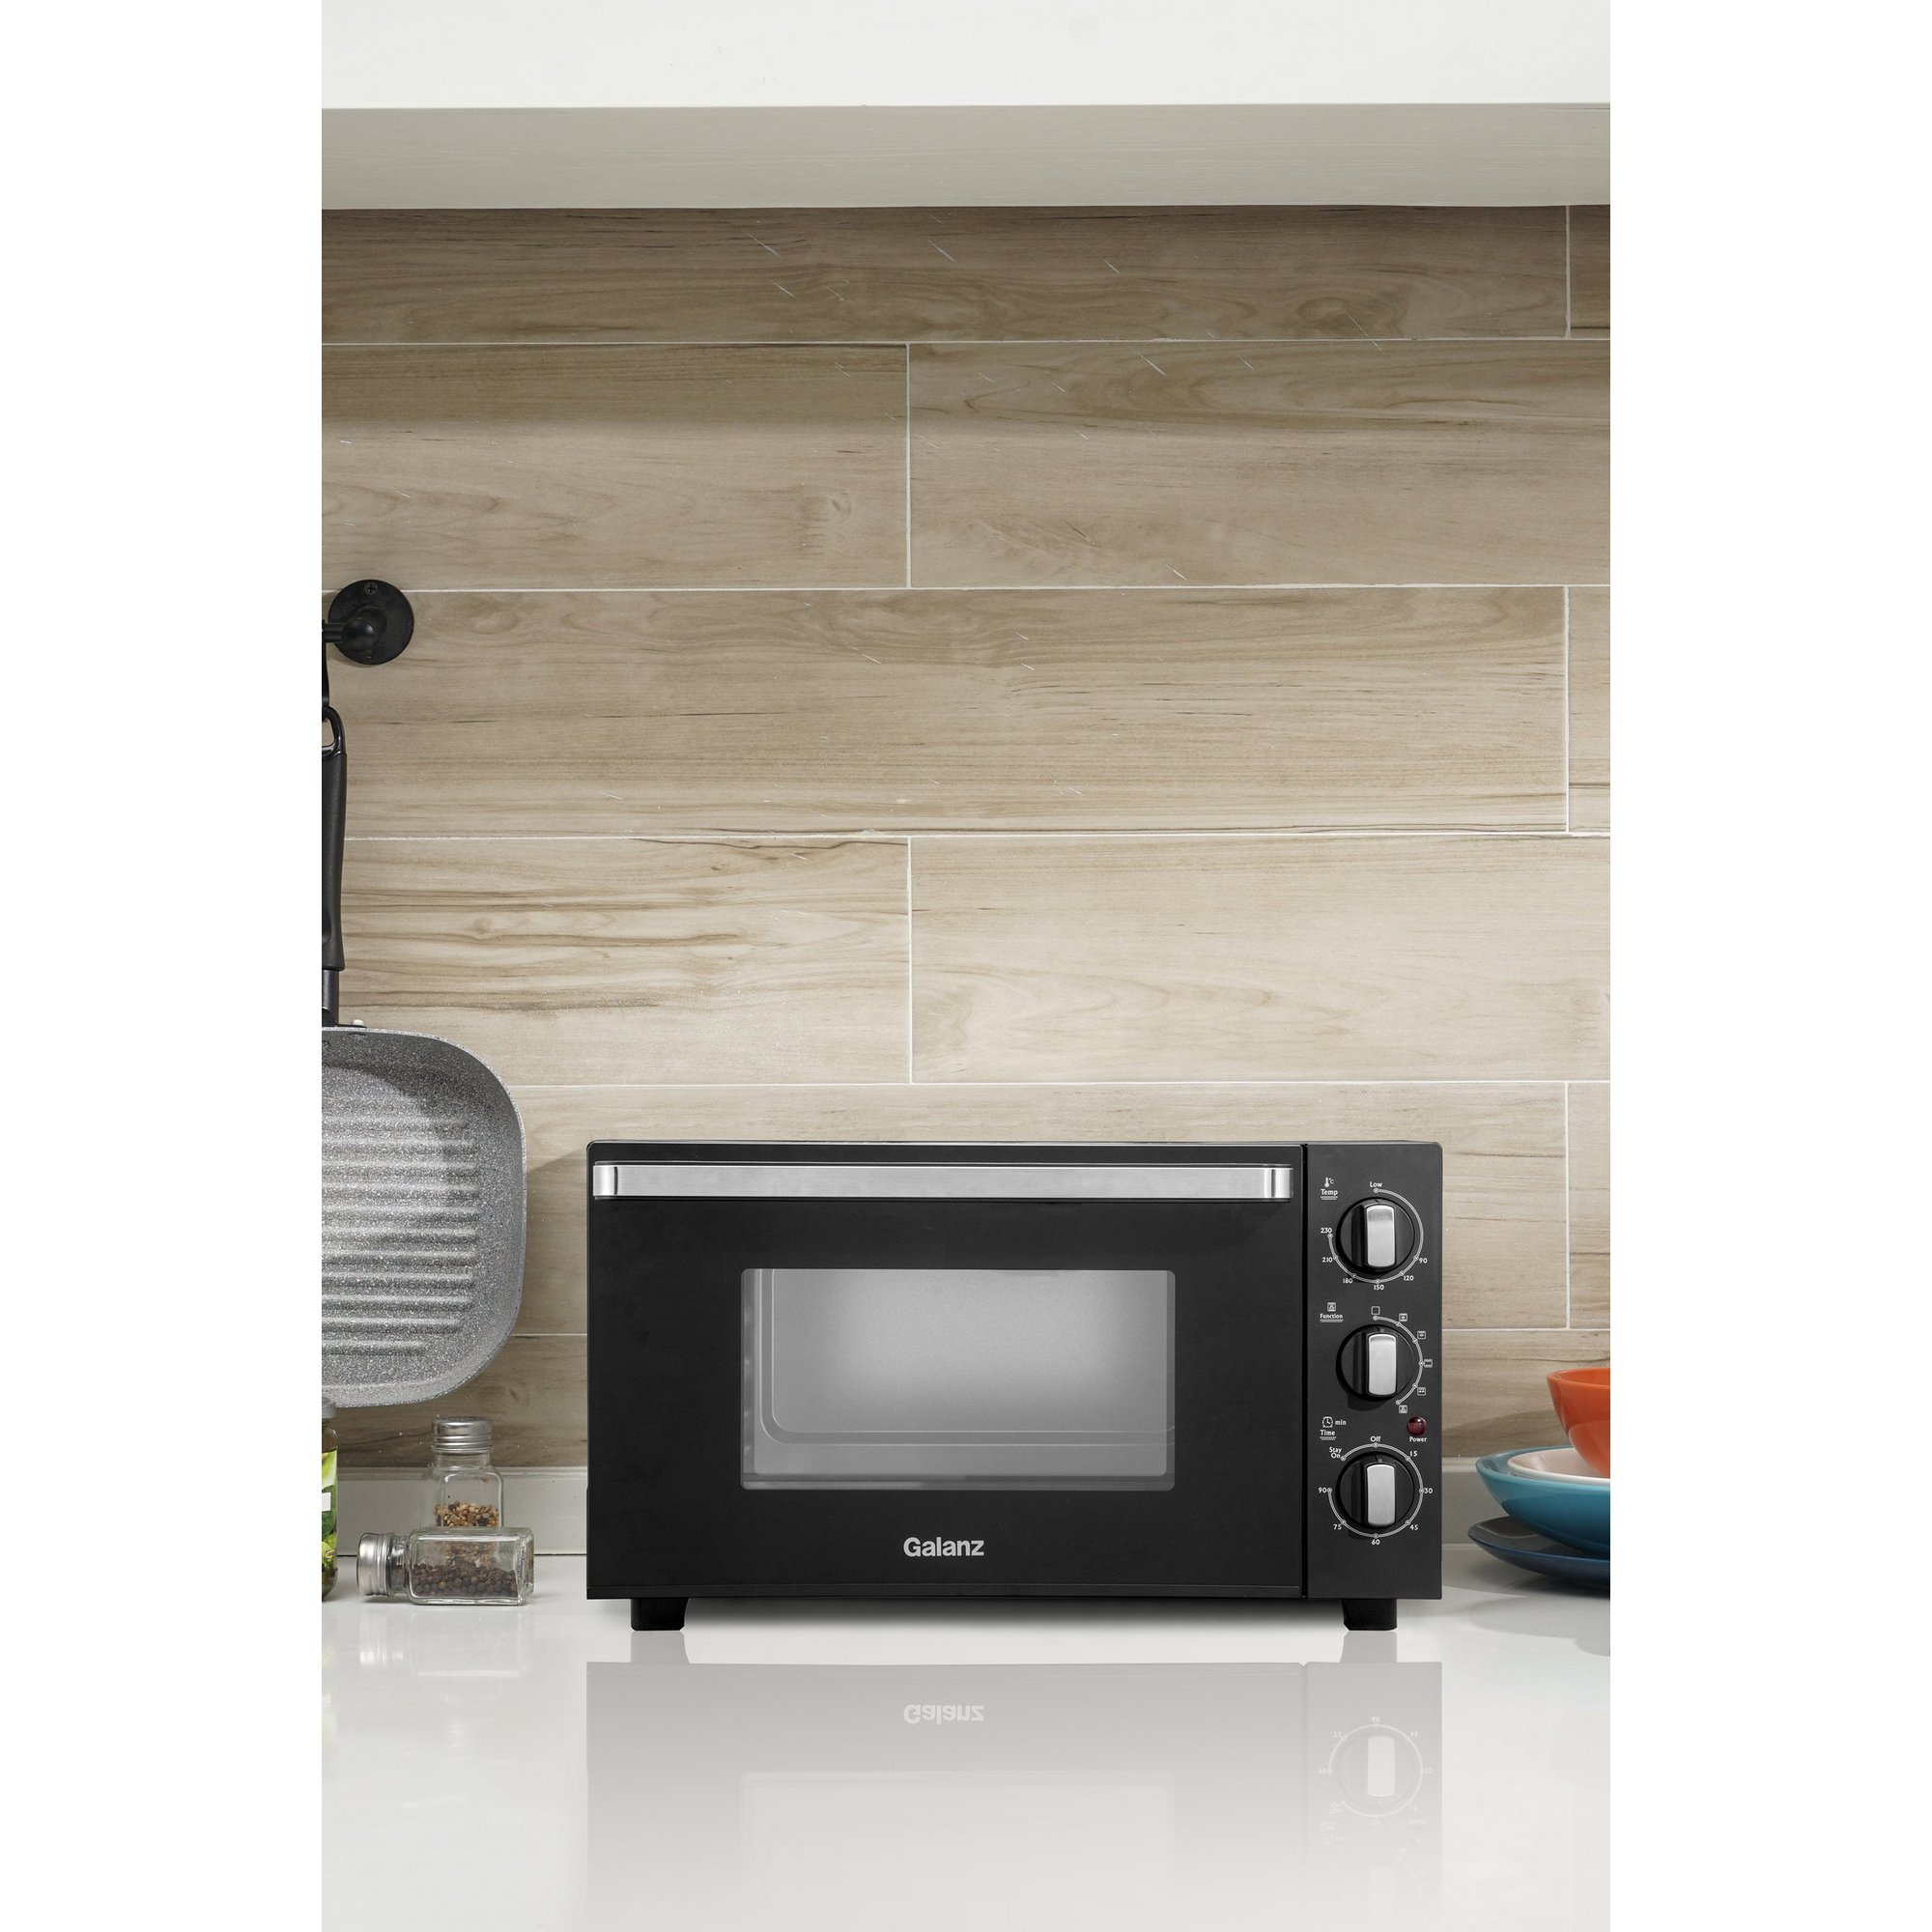 Image of Galanz 30 Litre 1500W Mini Oven with Rotisserie